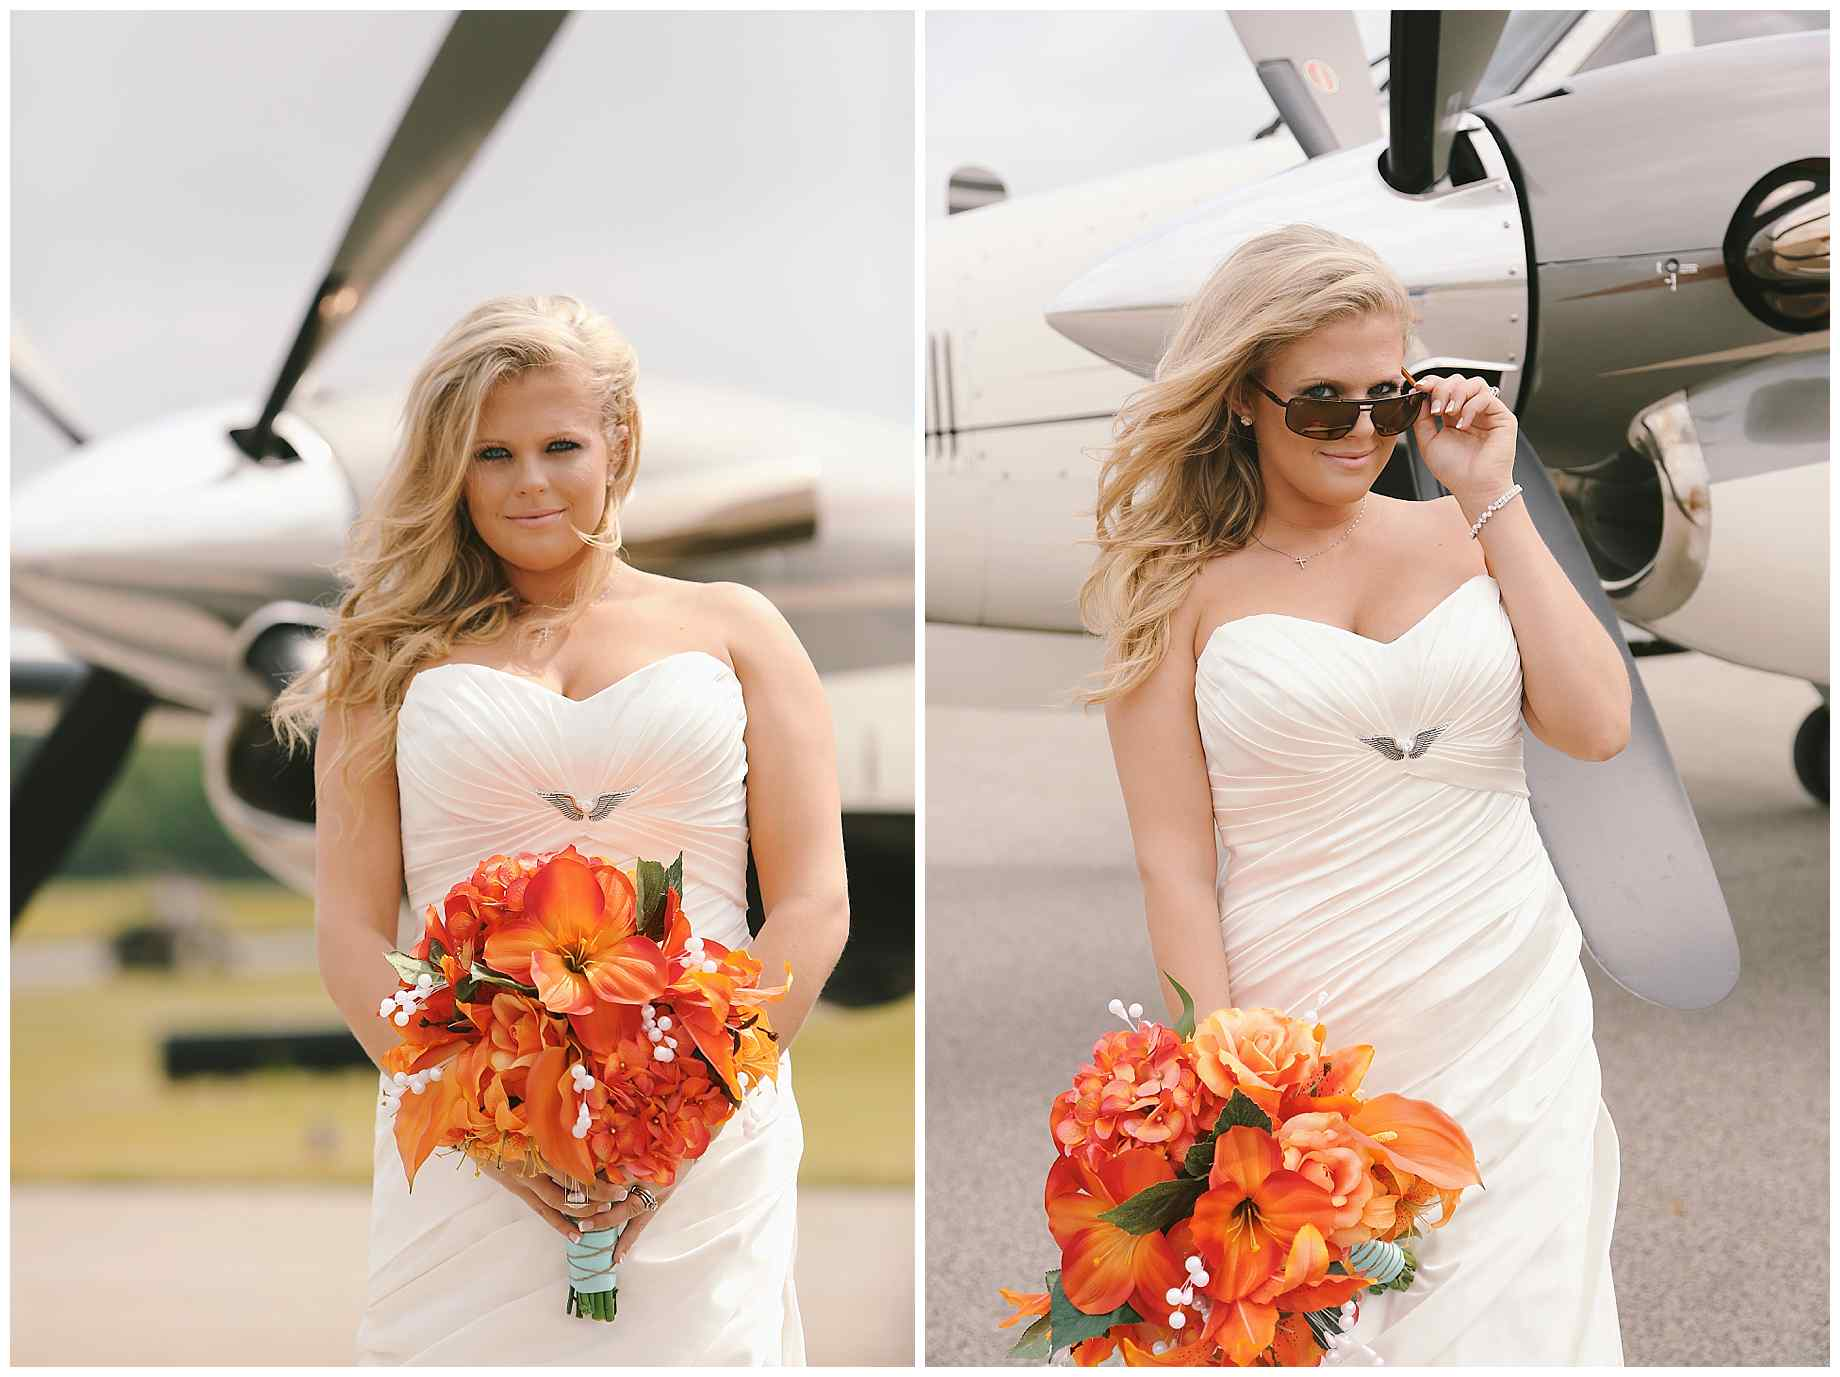 airplane-bridal-photos-003